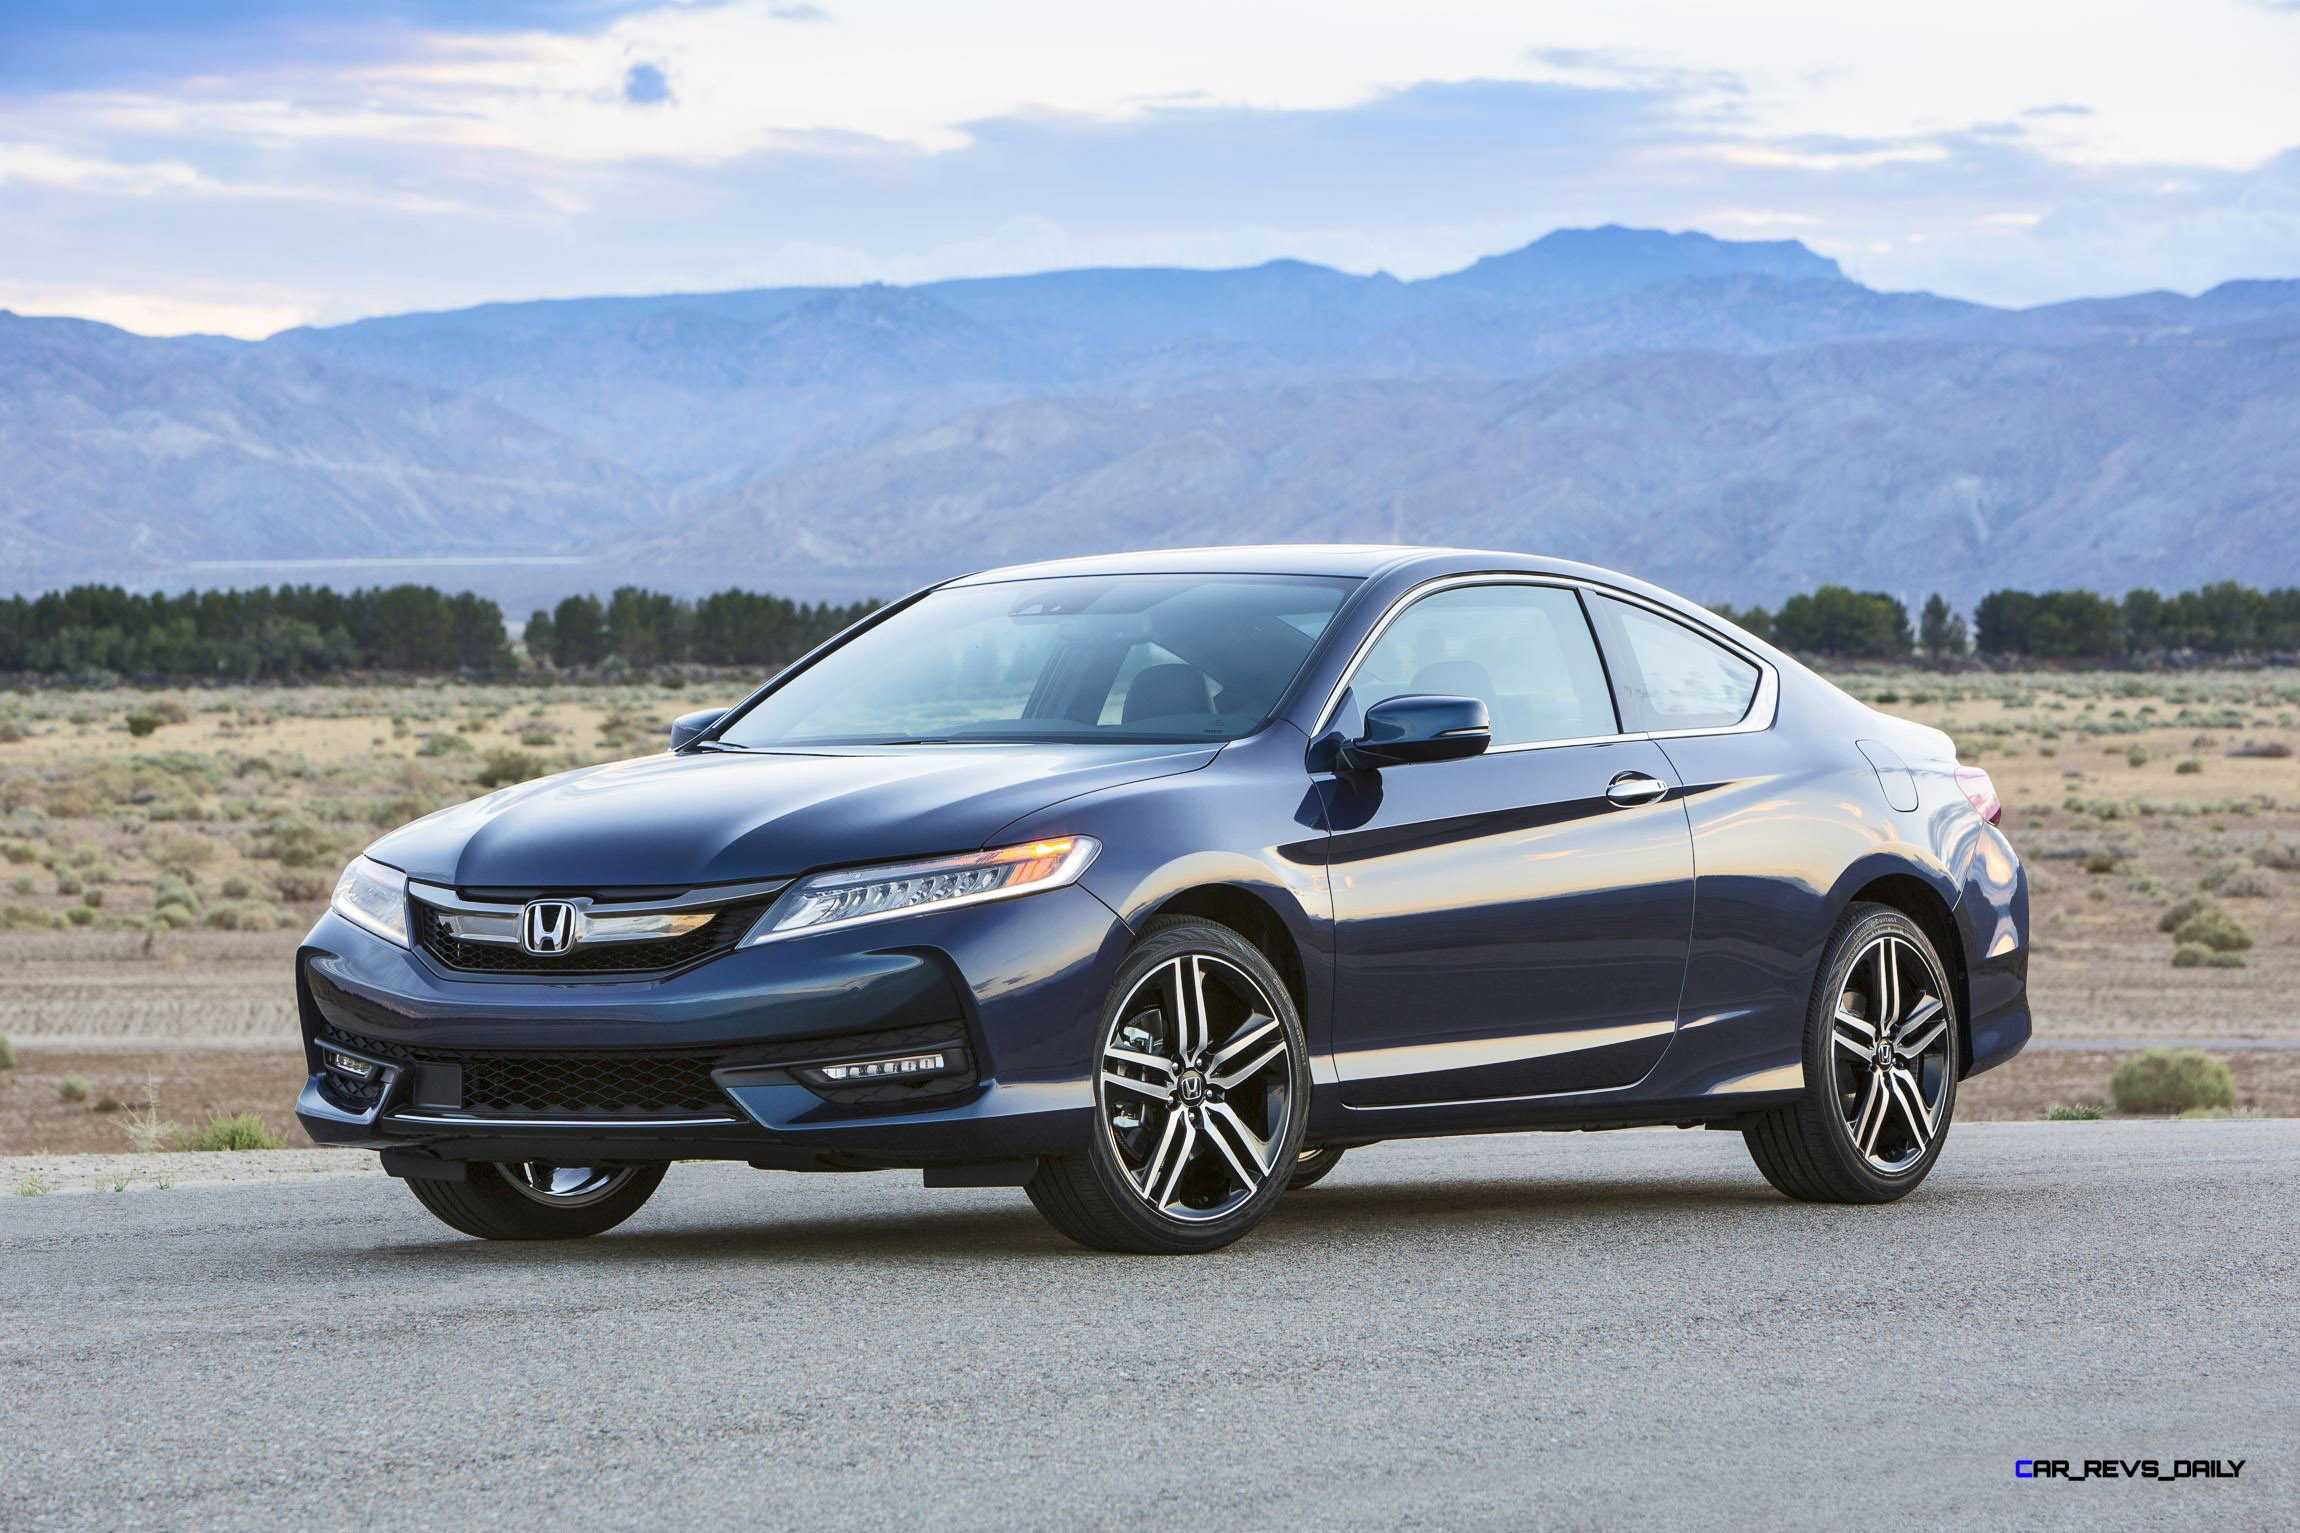 cargurus overview coupe accord honda cars pic